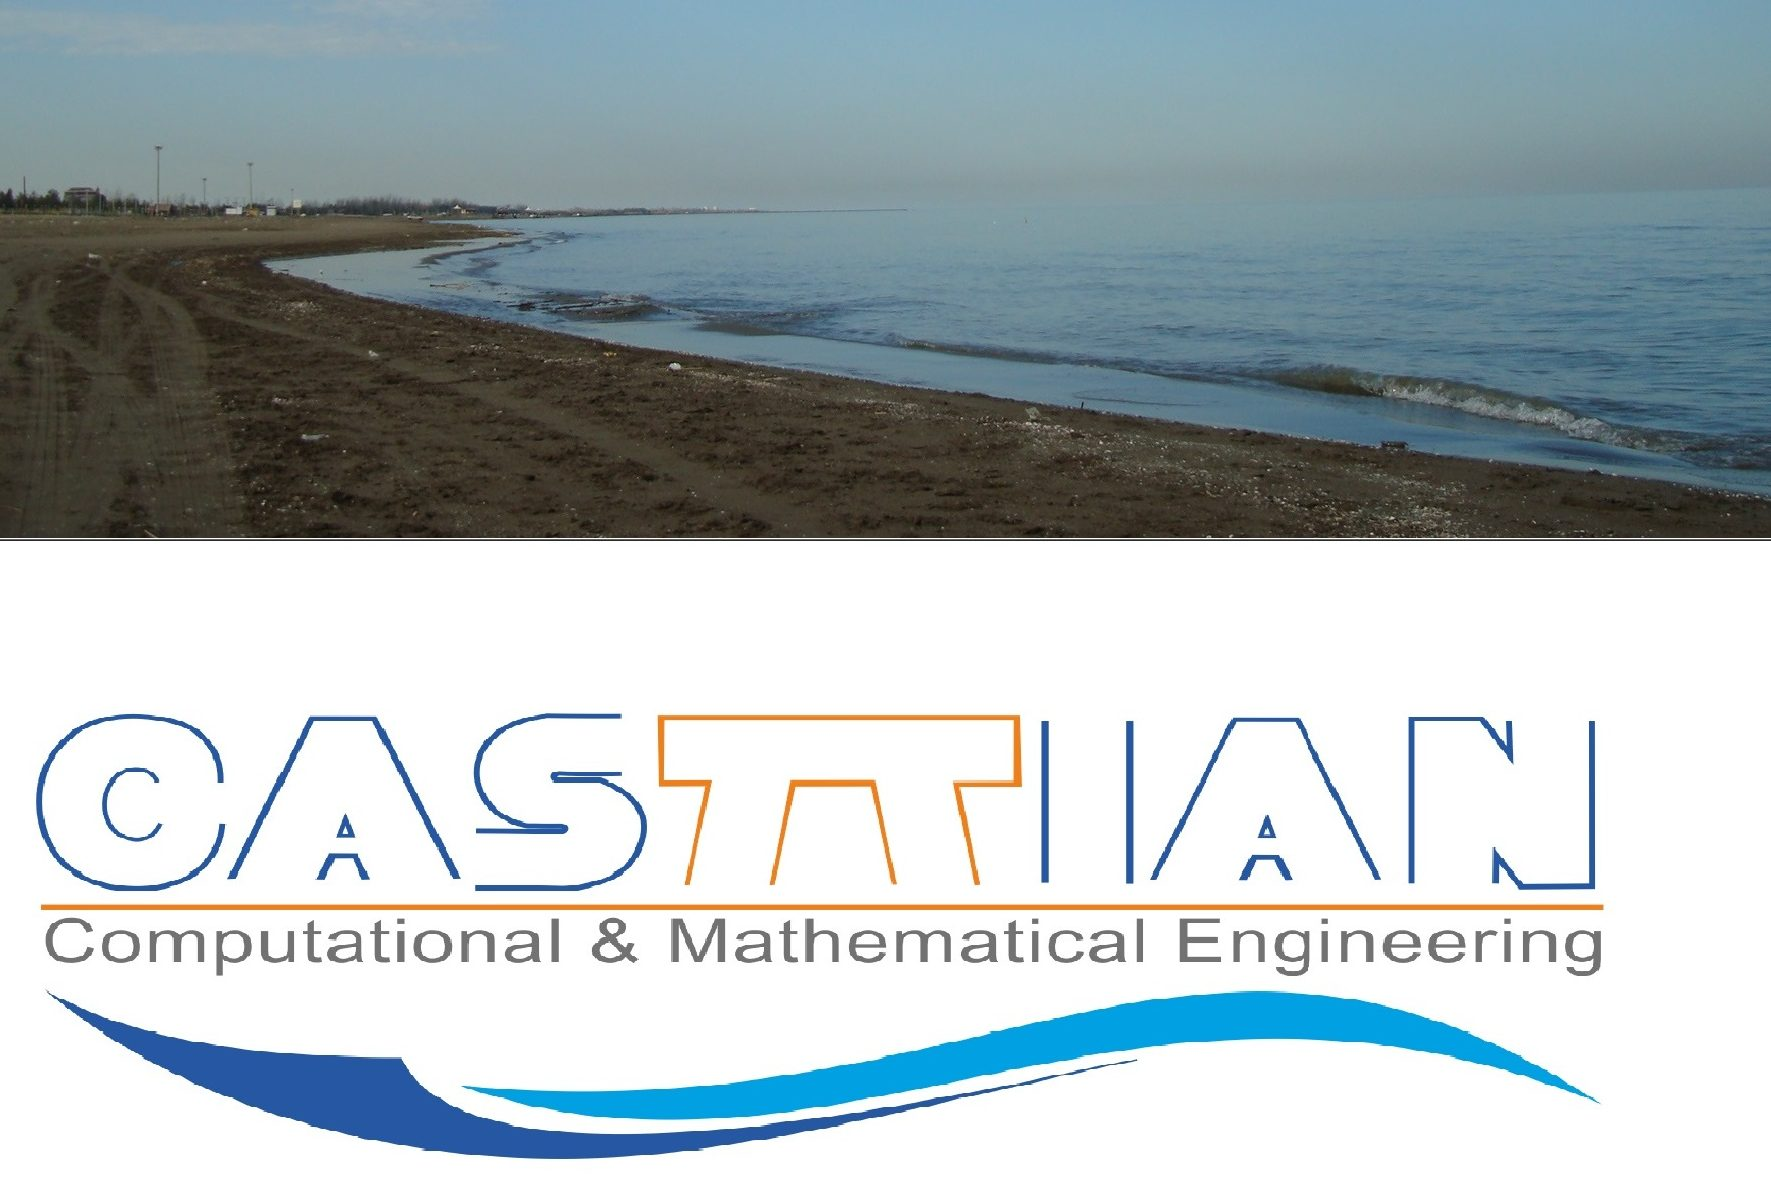 Caspian Journal of Computational & Mathematical Engineering